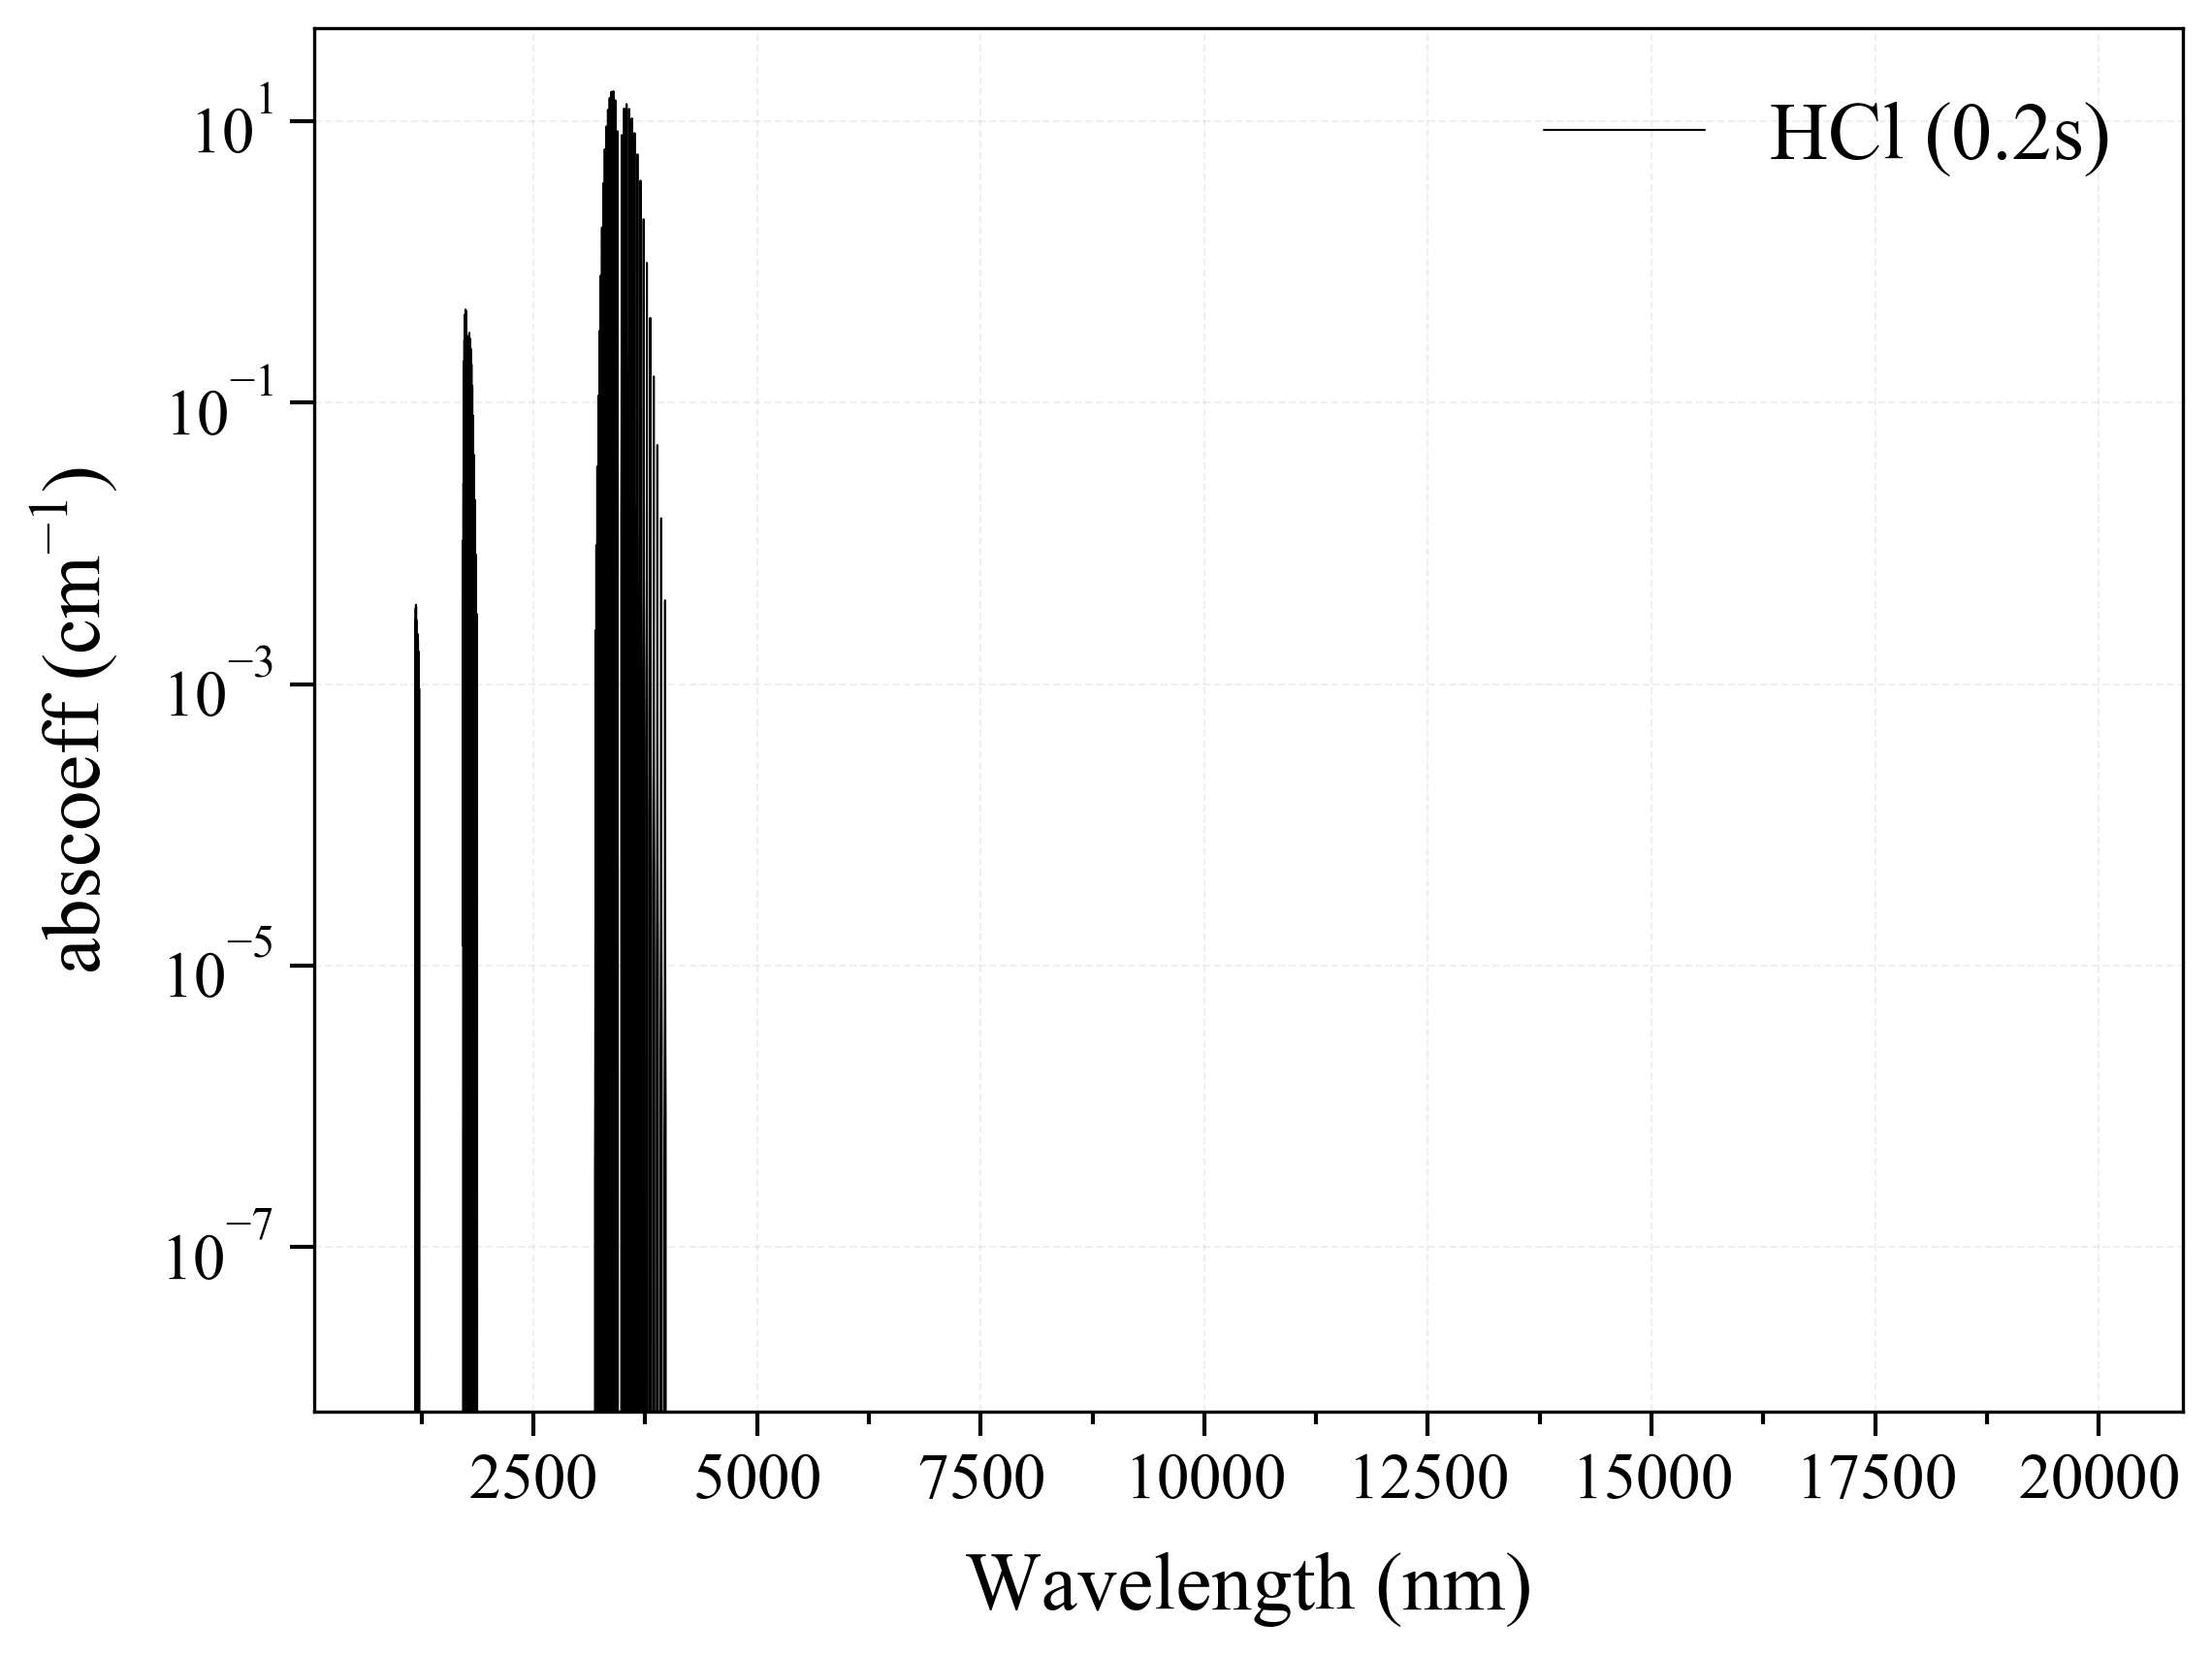 Hydrogen Chloride HCl infrared absorption coefficient